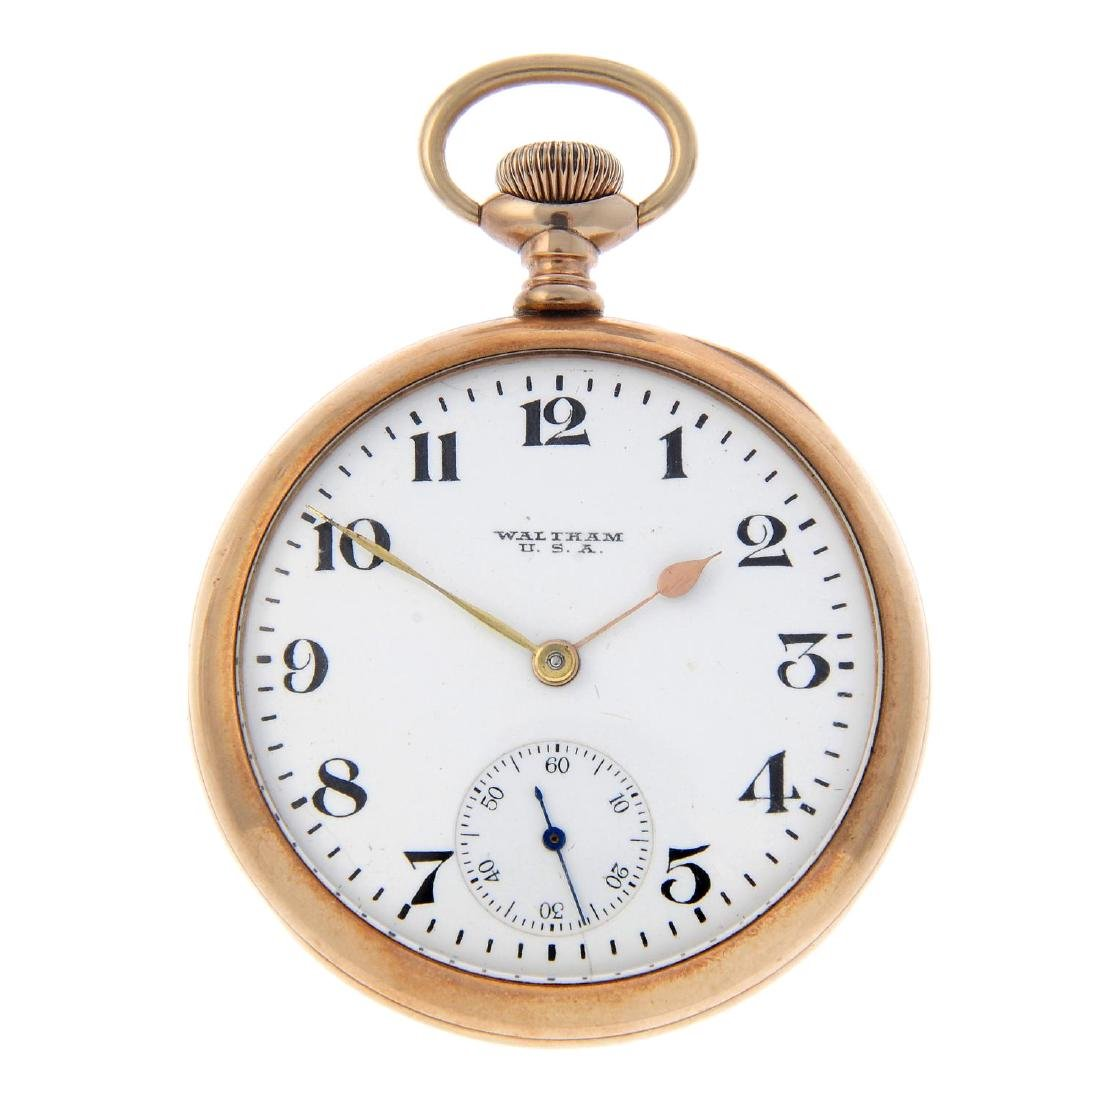 An open face pocket watch by Waltham. 9ct yellow gold